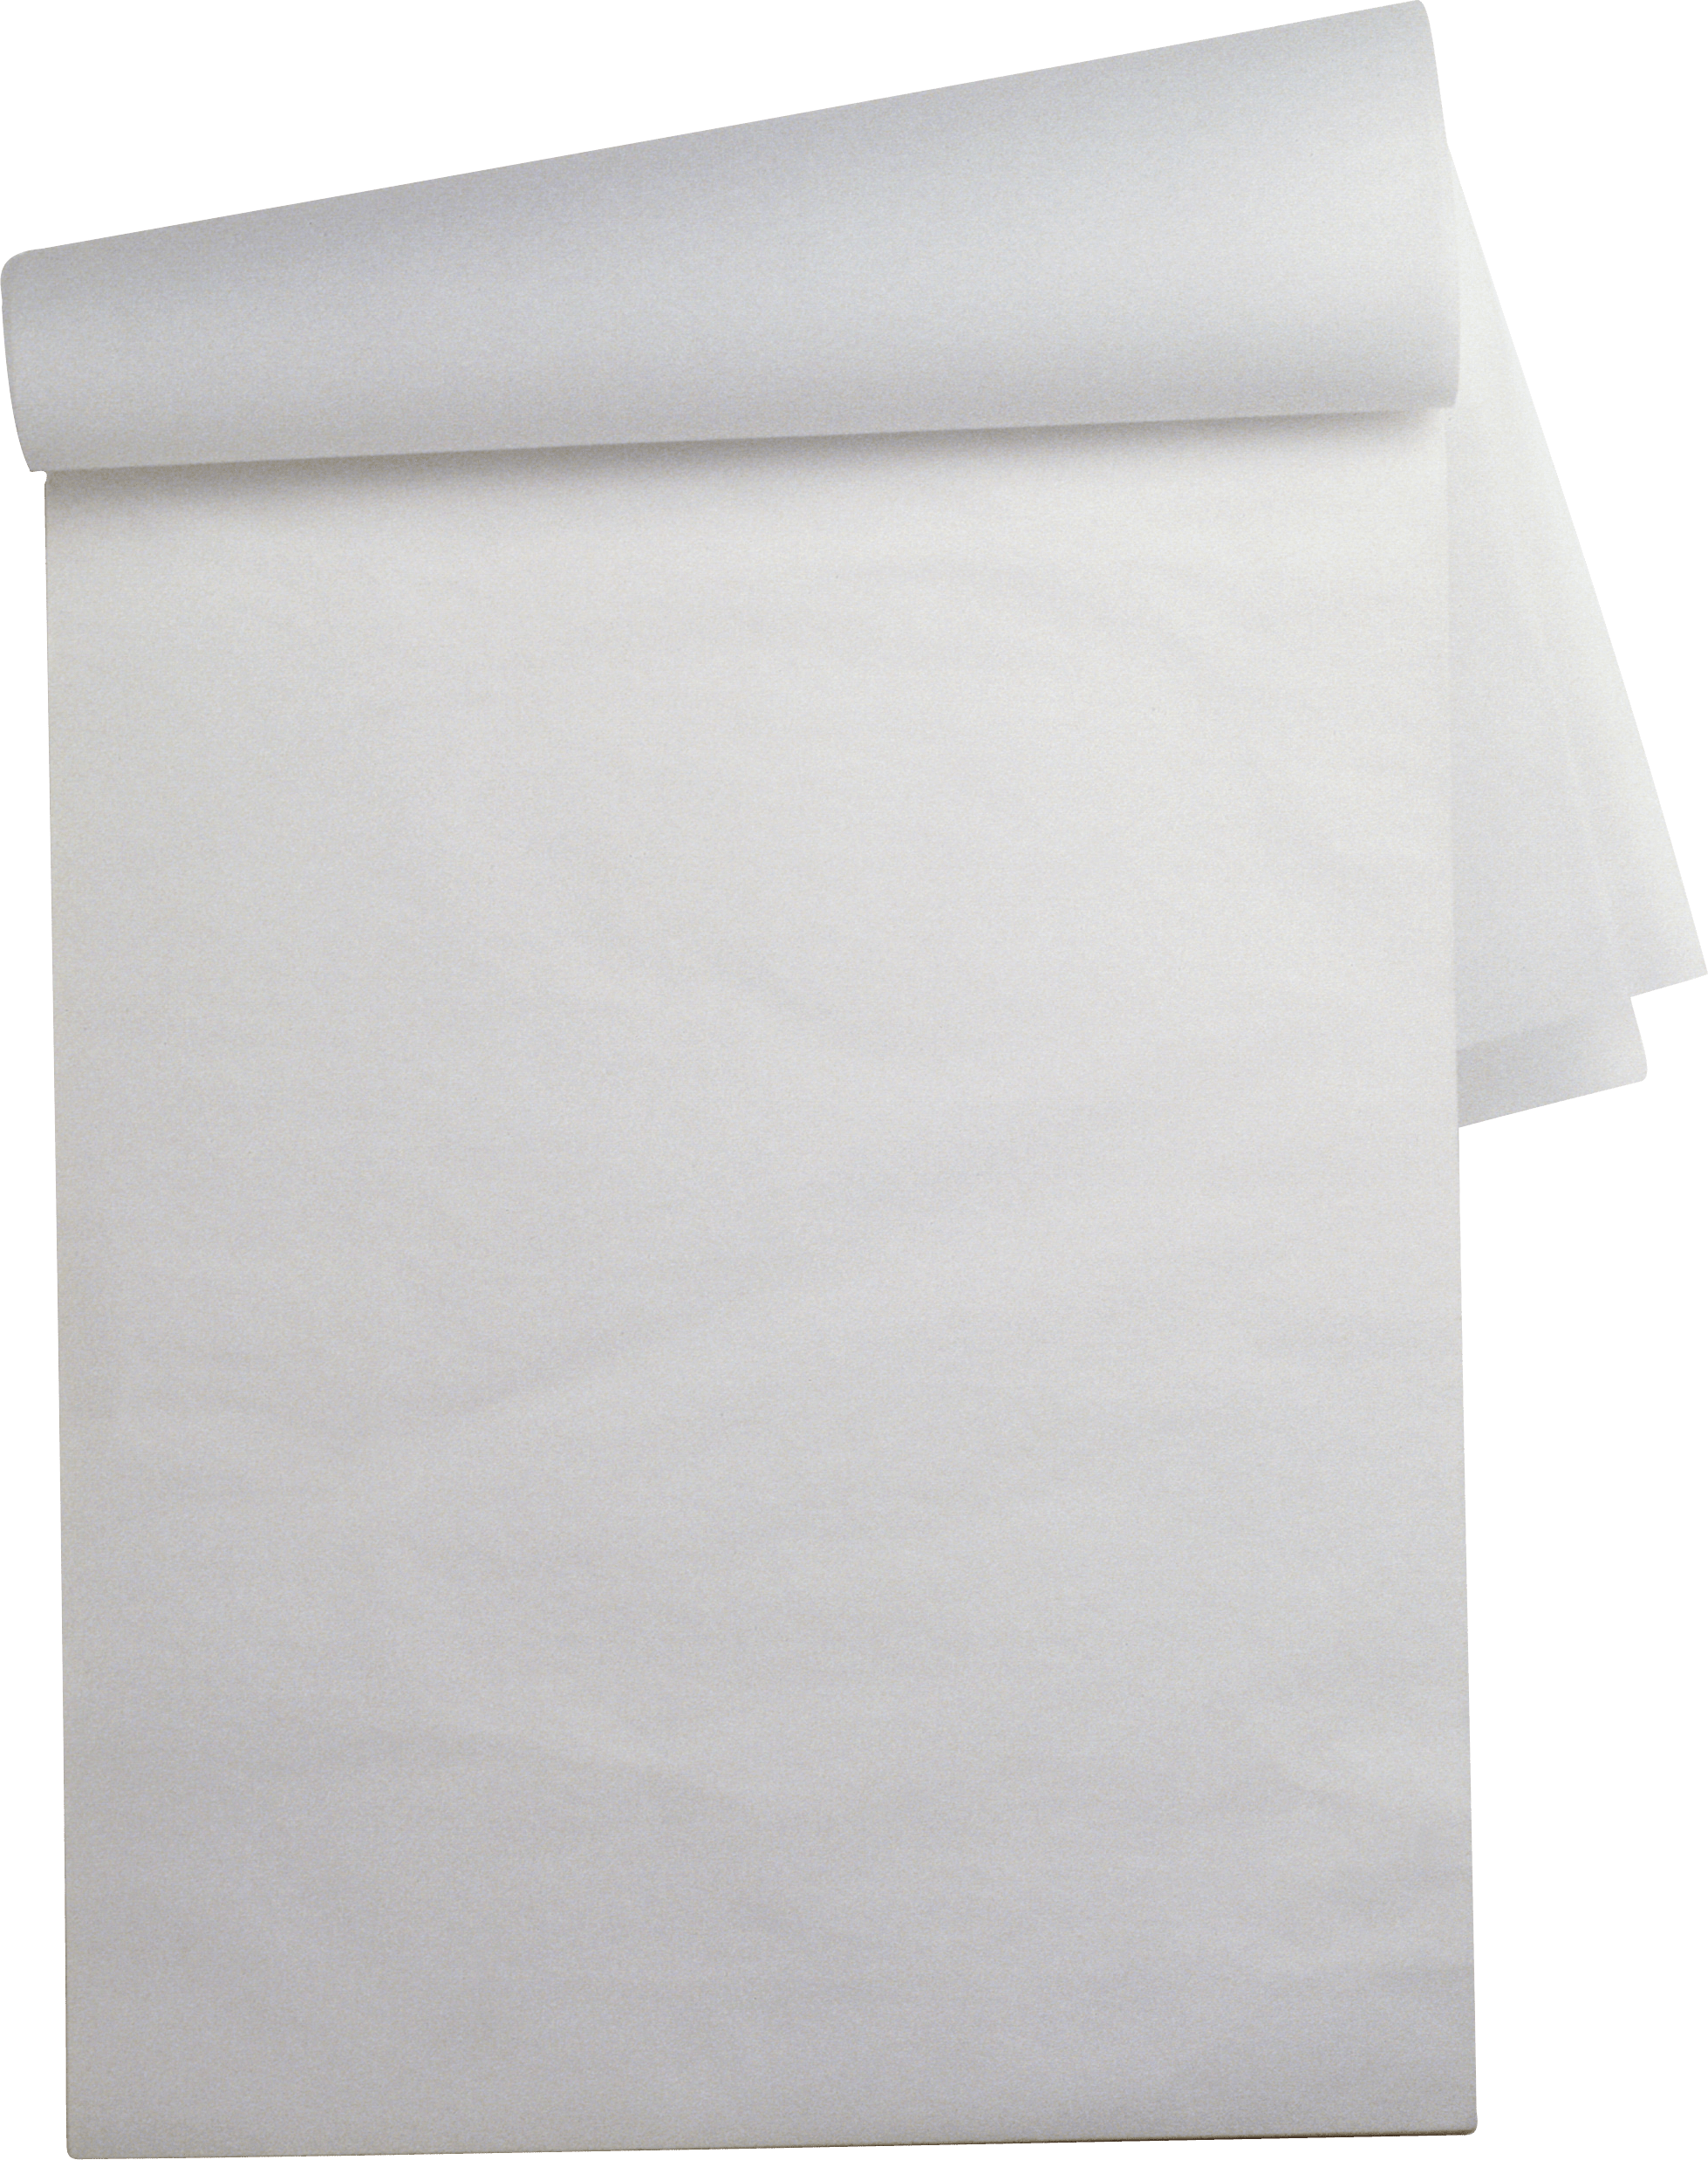 The transparent paper. Sheet of png anta